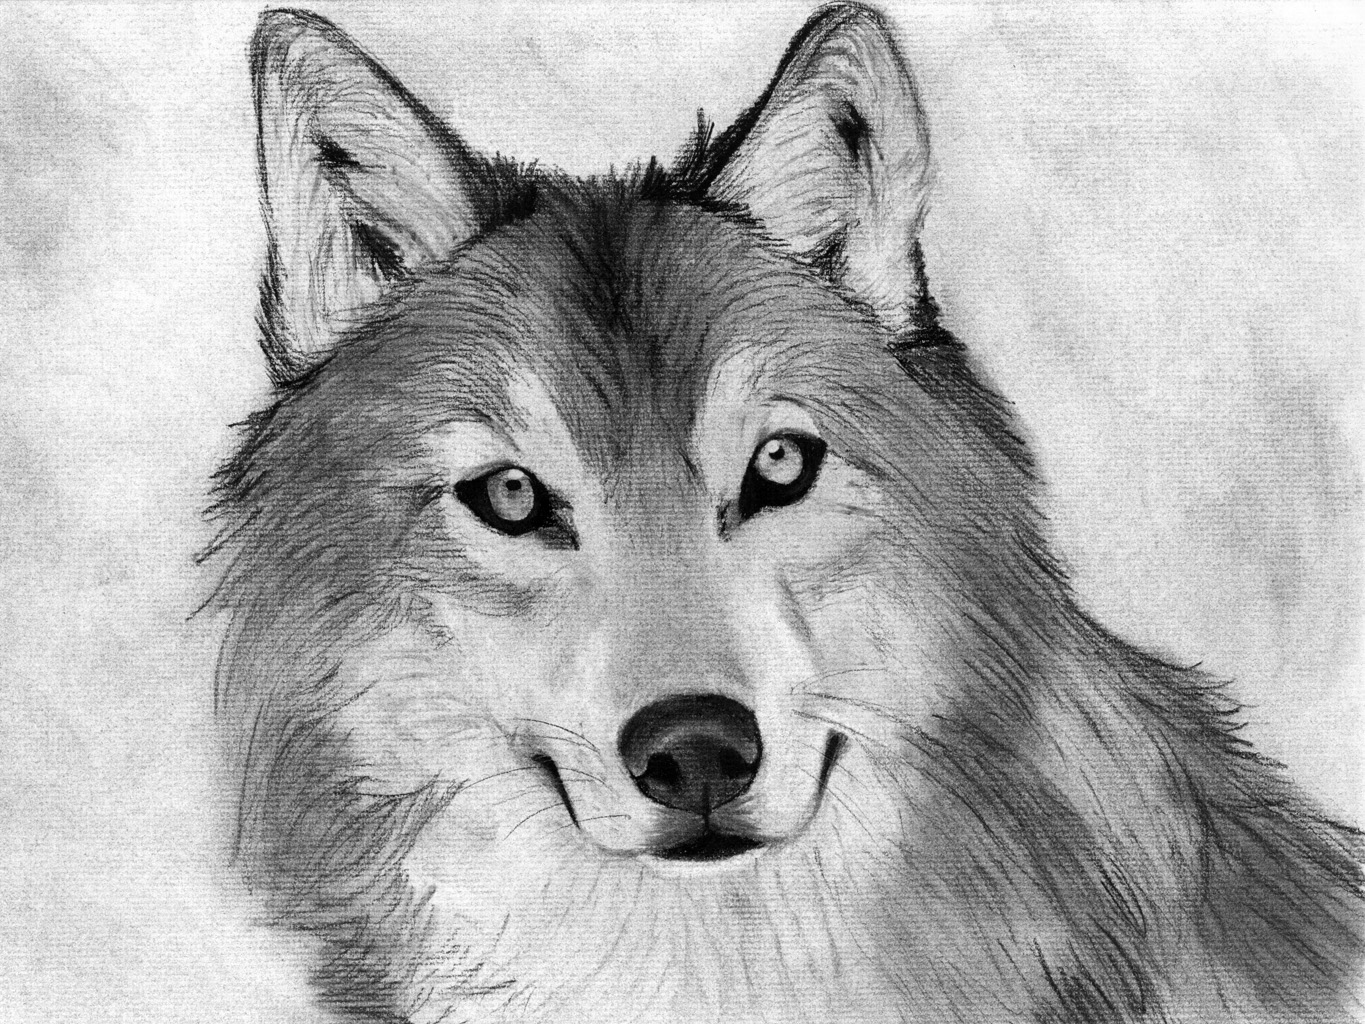 Drawn amd charcoal Google drawing animals animals Search